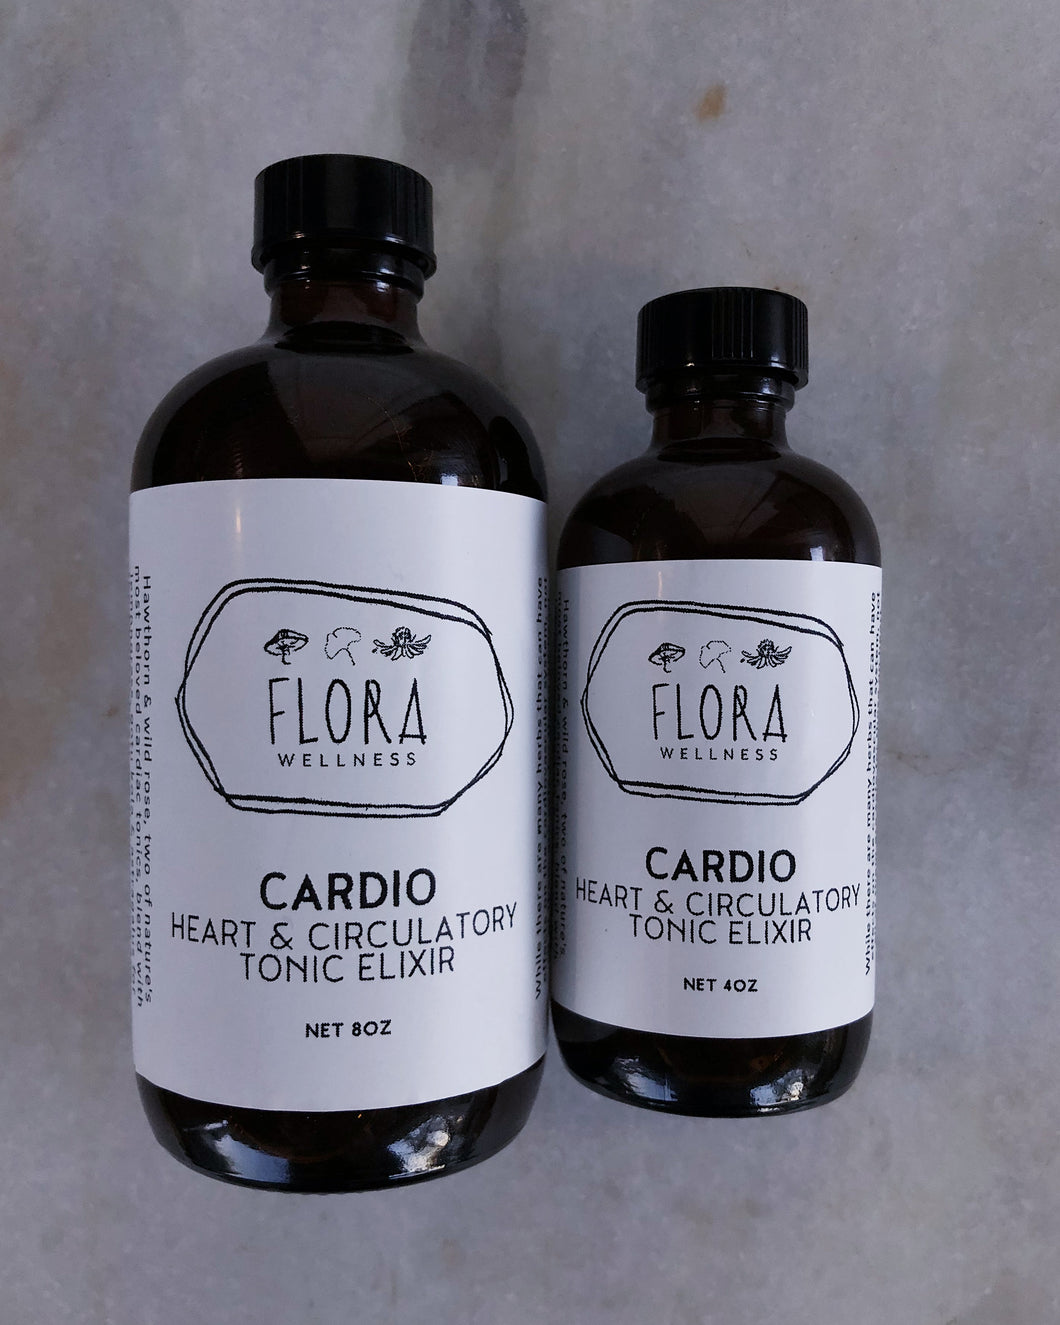 Cardio Heat & Circulatory Tonic Elixir